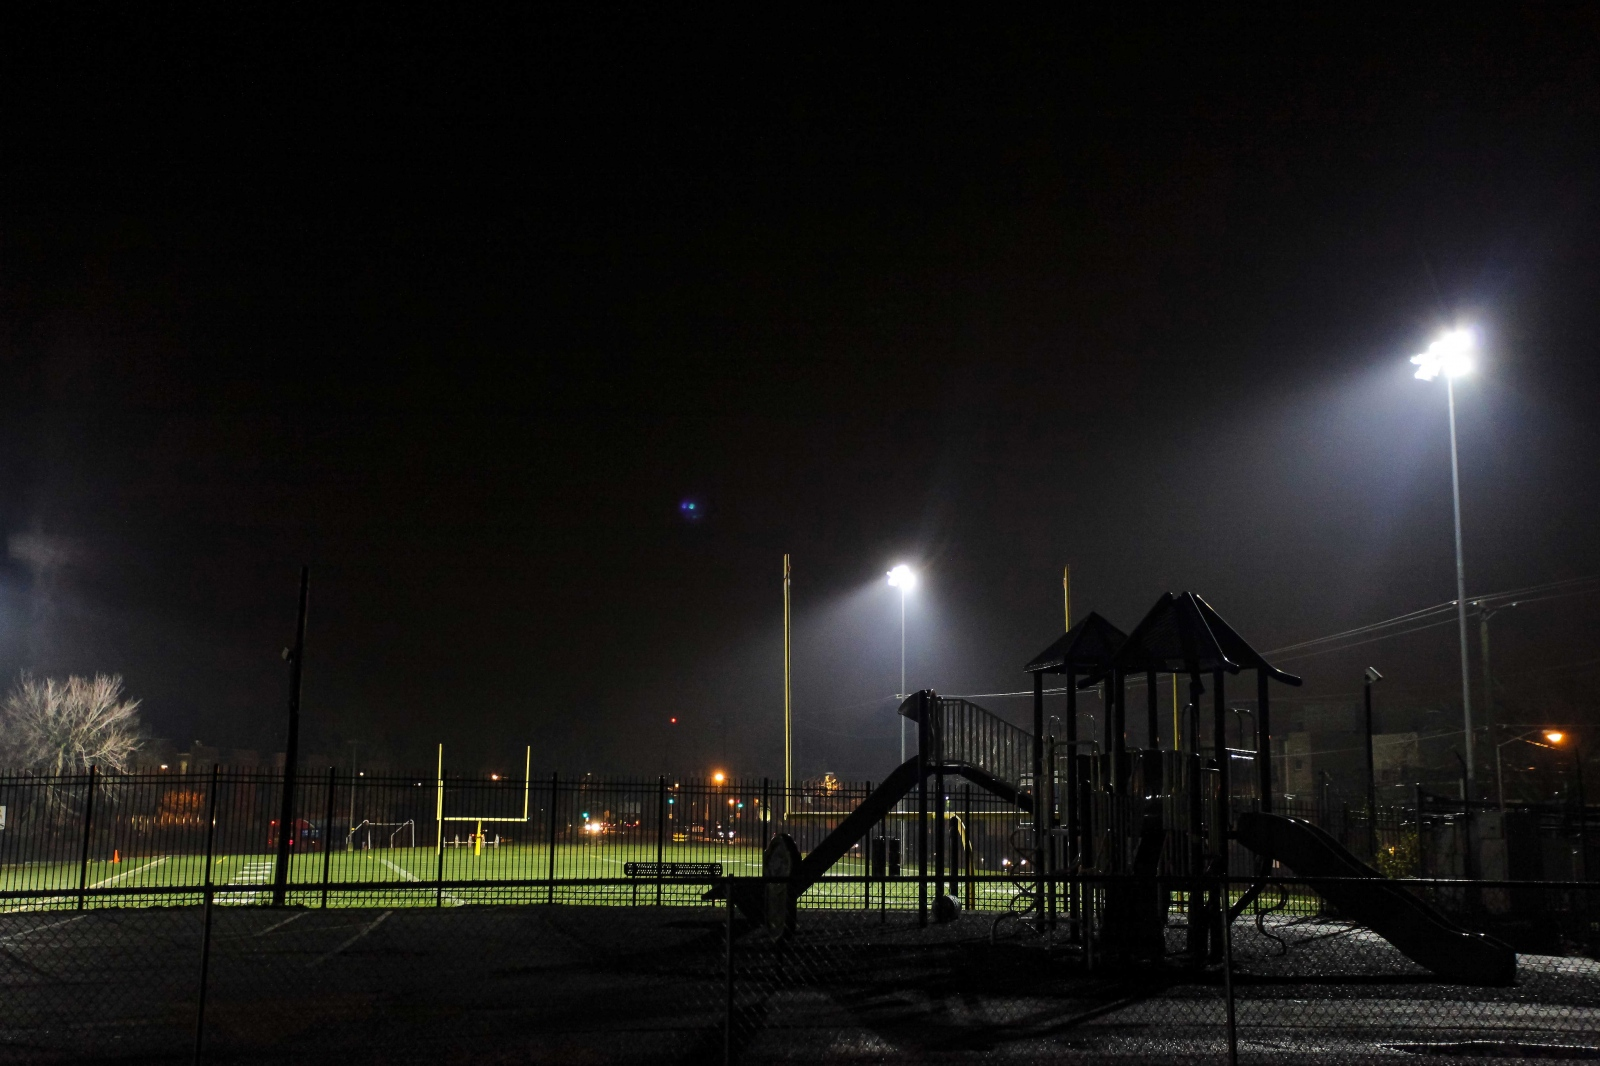 Field lights shine in the evening at Stanton Elementary as many of the teachers go home. Most teachers at Stanton work 12 hours a day or more on Mondays through Fridays and even sometimes on Saturdays.